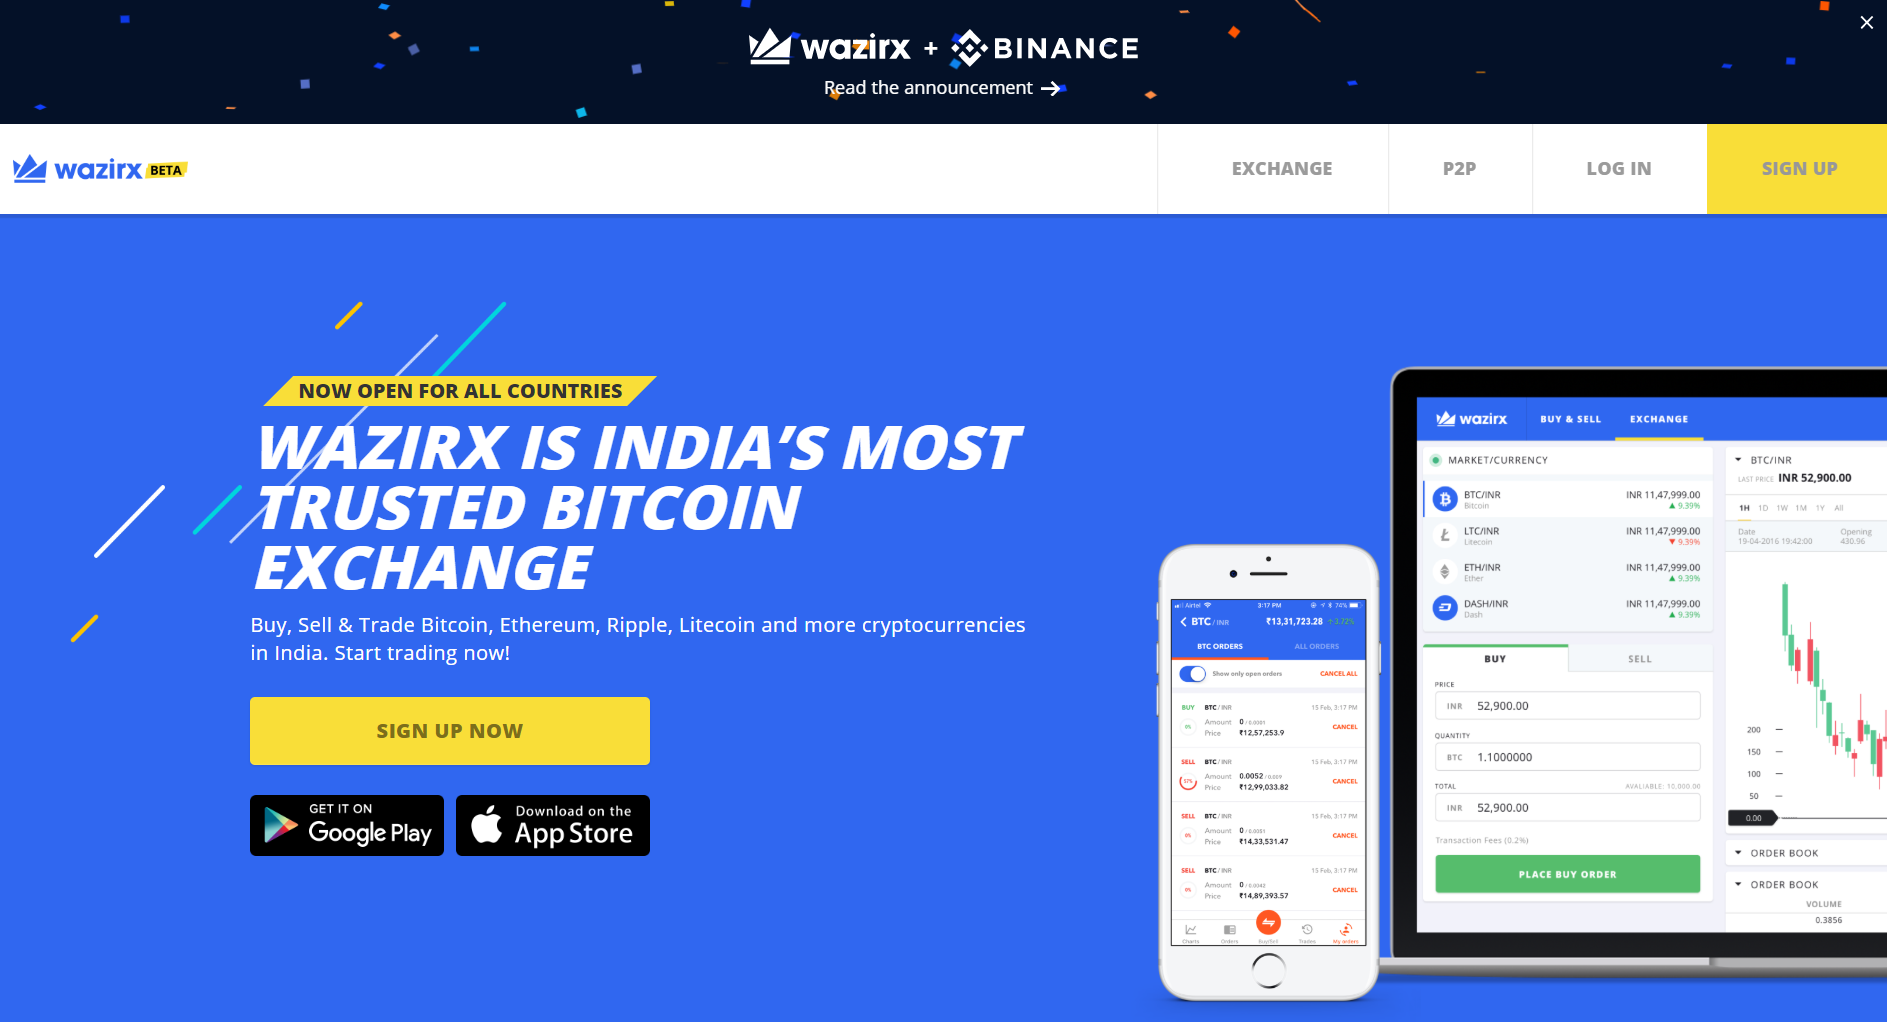 WazirX: India's Most Trusted Cryptocurrency Exchange